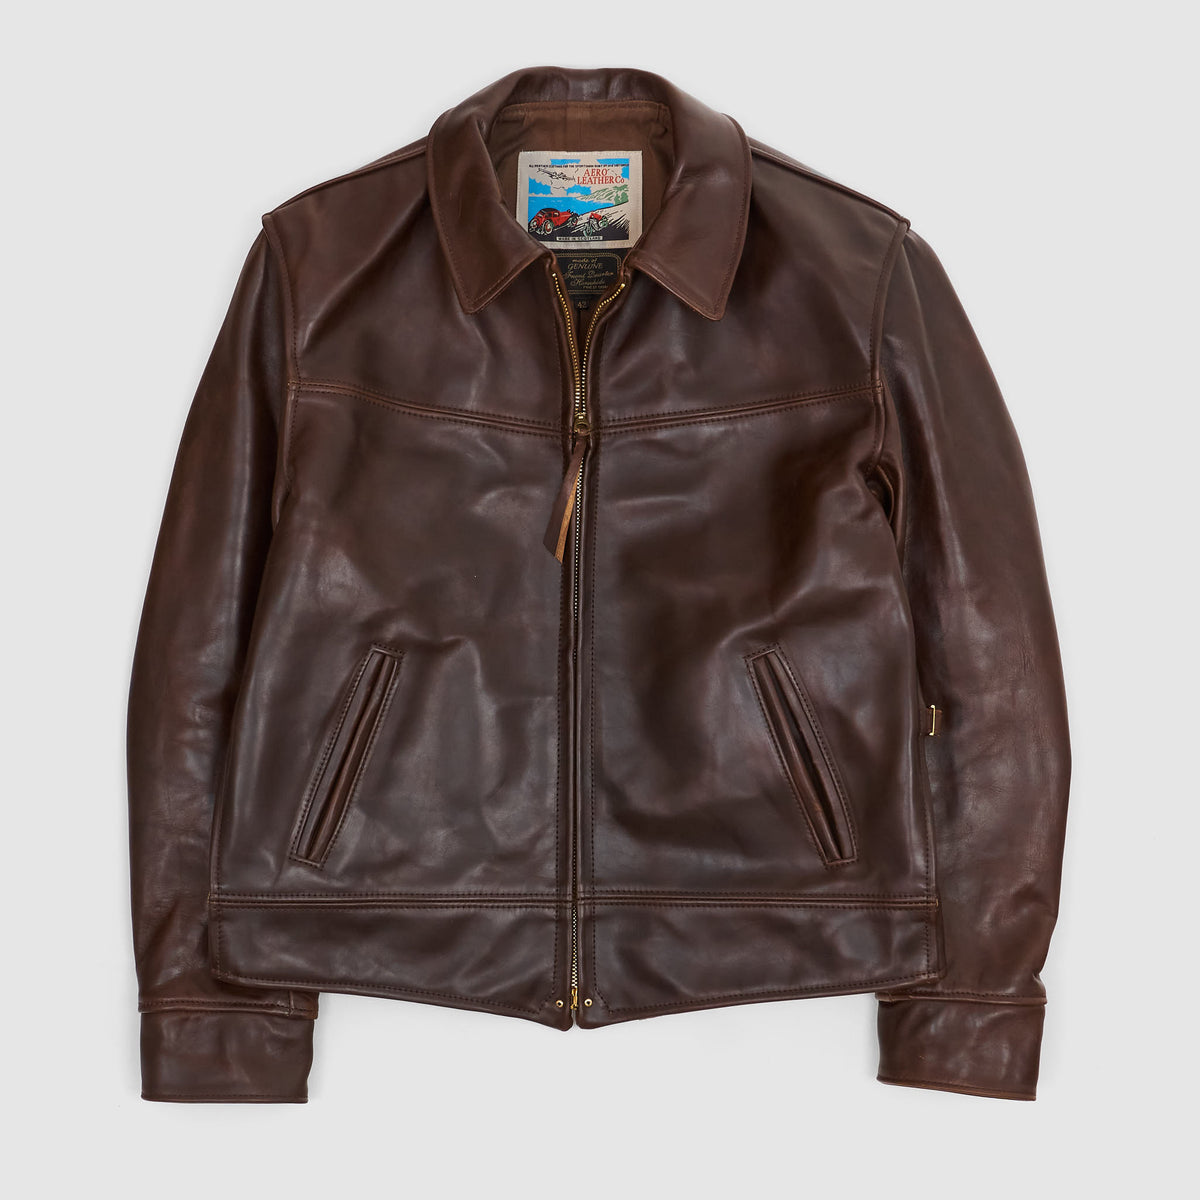 Aero Leathers Dust Bowl Leather Jacket